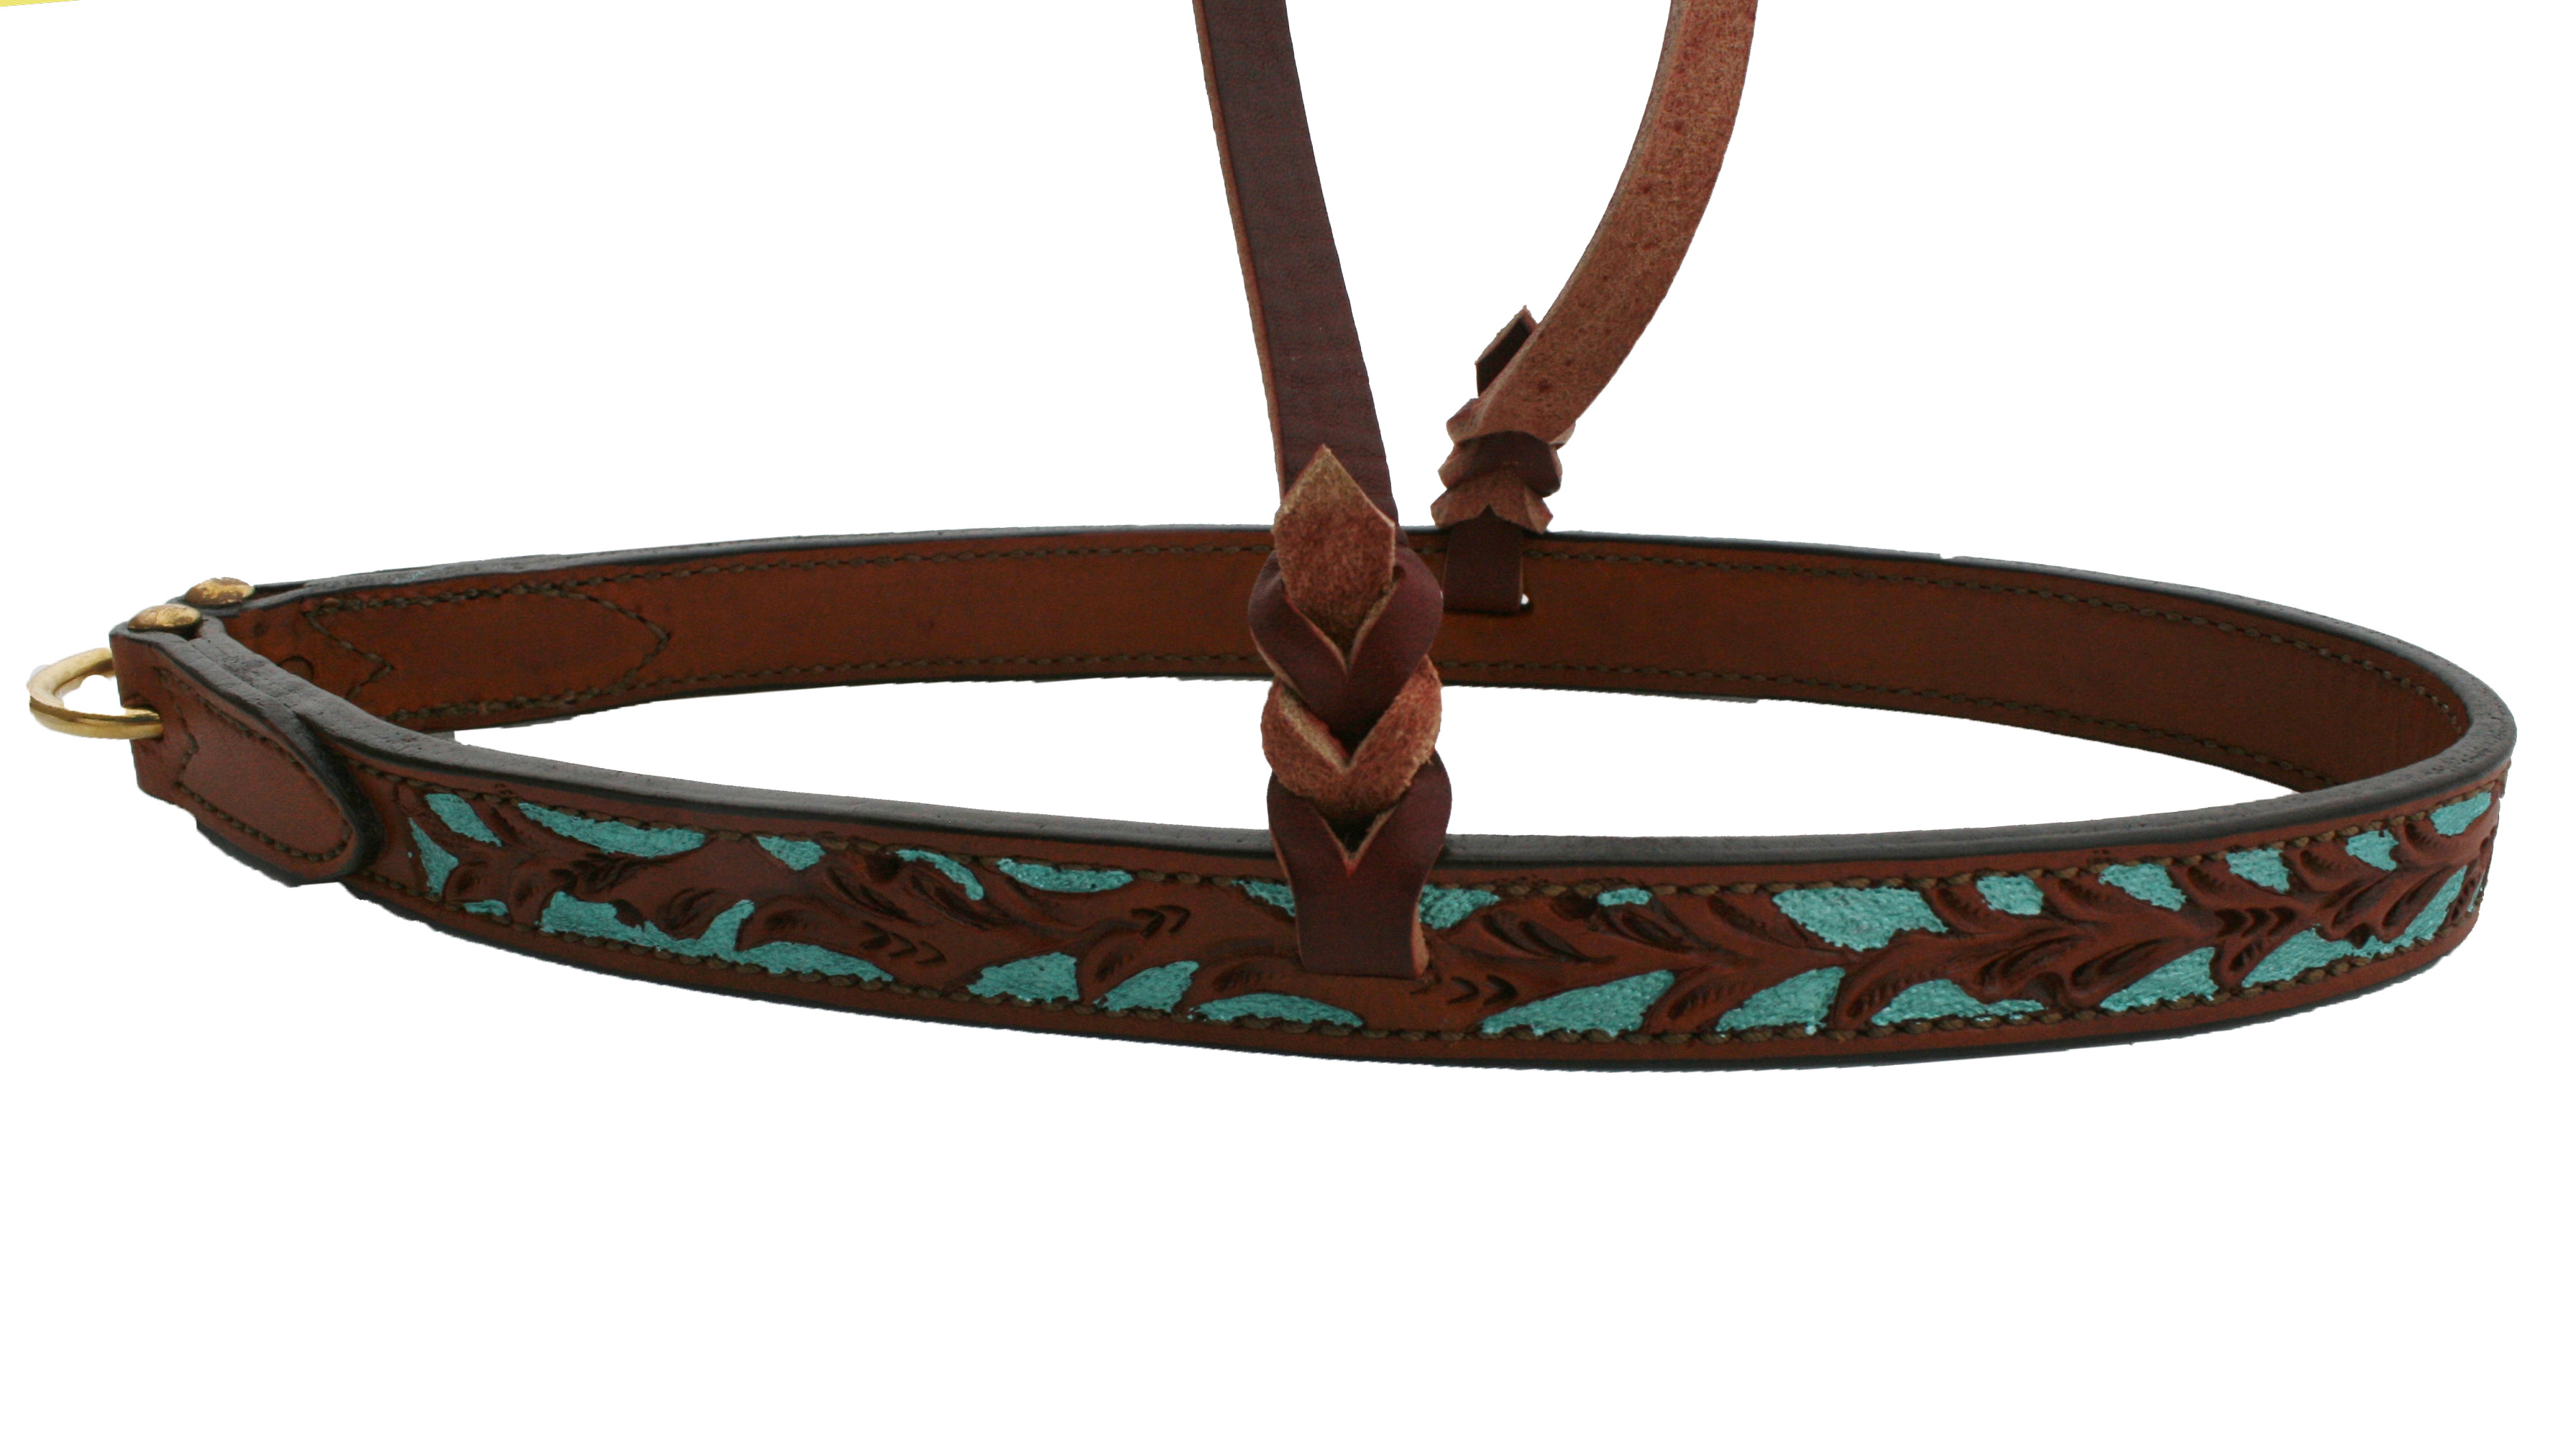 NOSEBAND w FLORAL TOOLING, TURQ PAINT